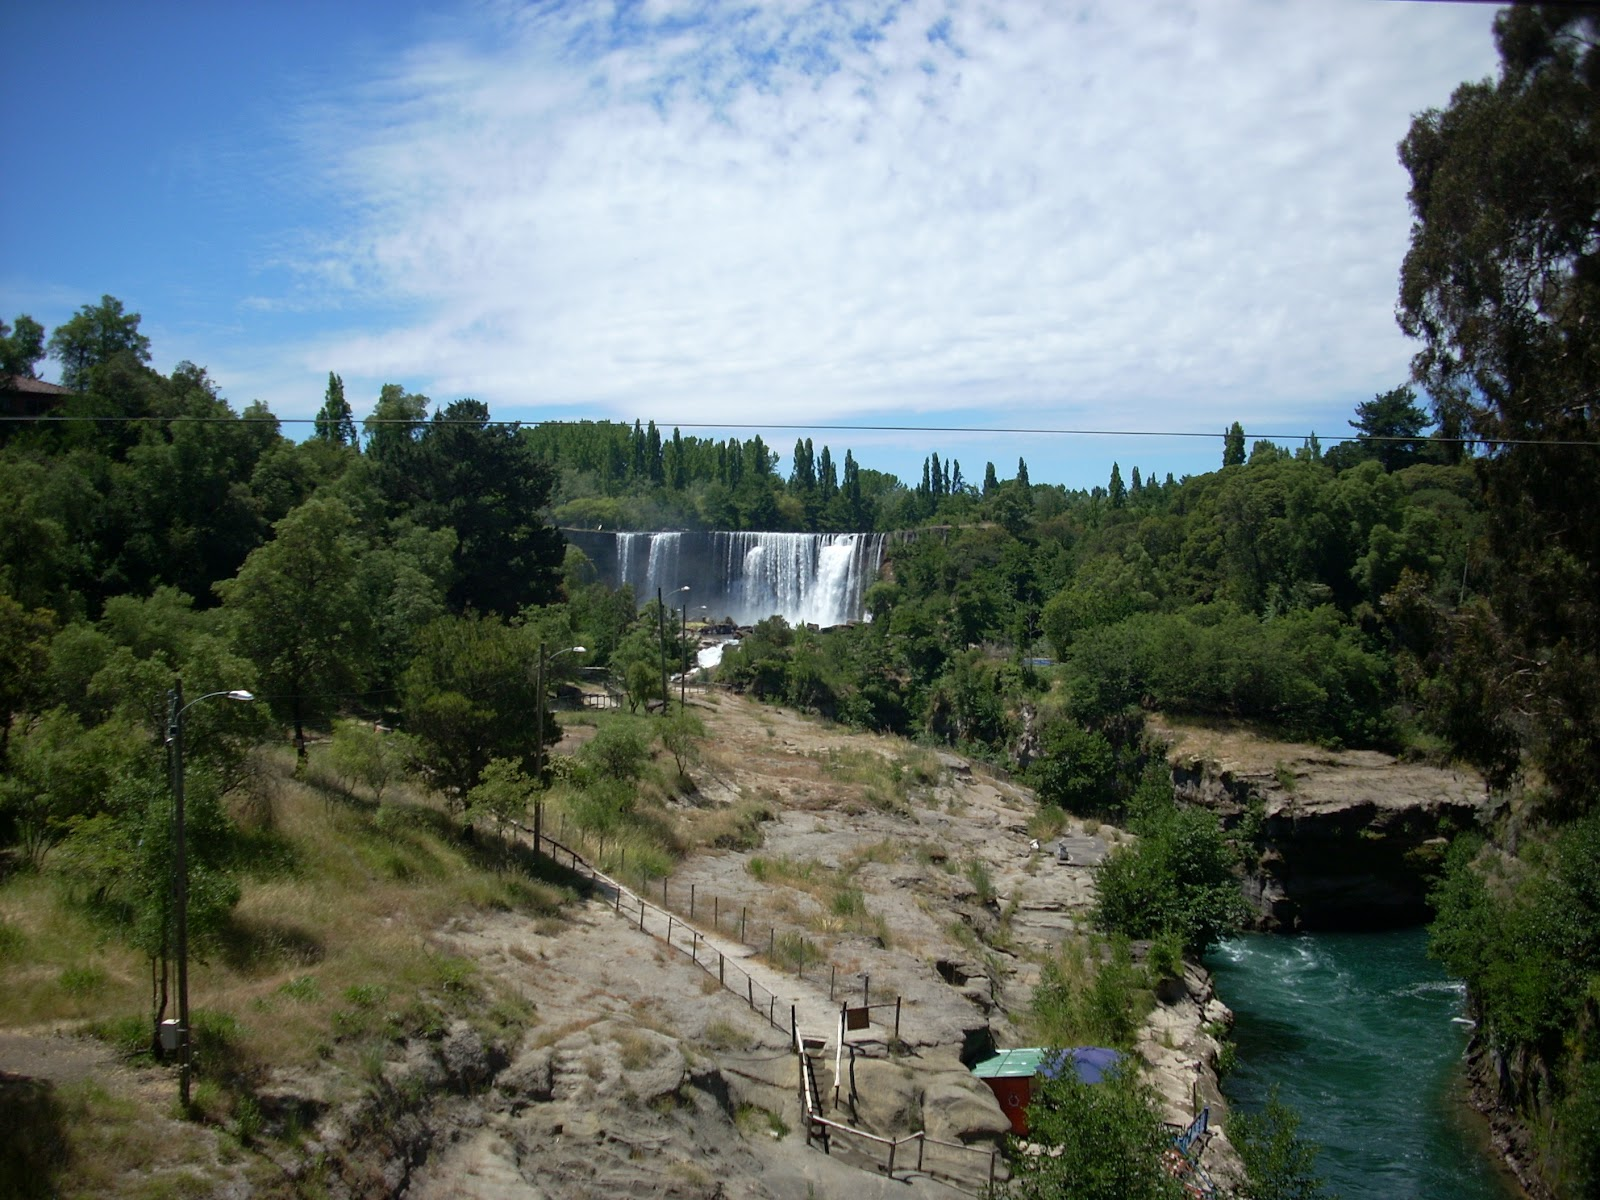 Salta del Lajos, a waterfall where I stopped to camp